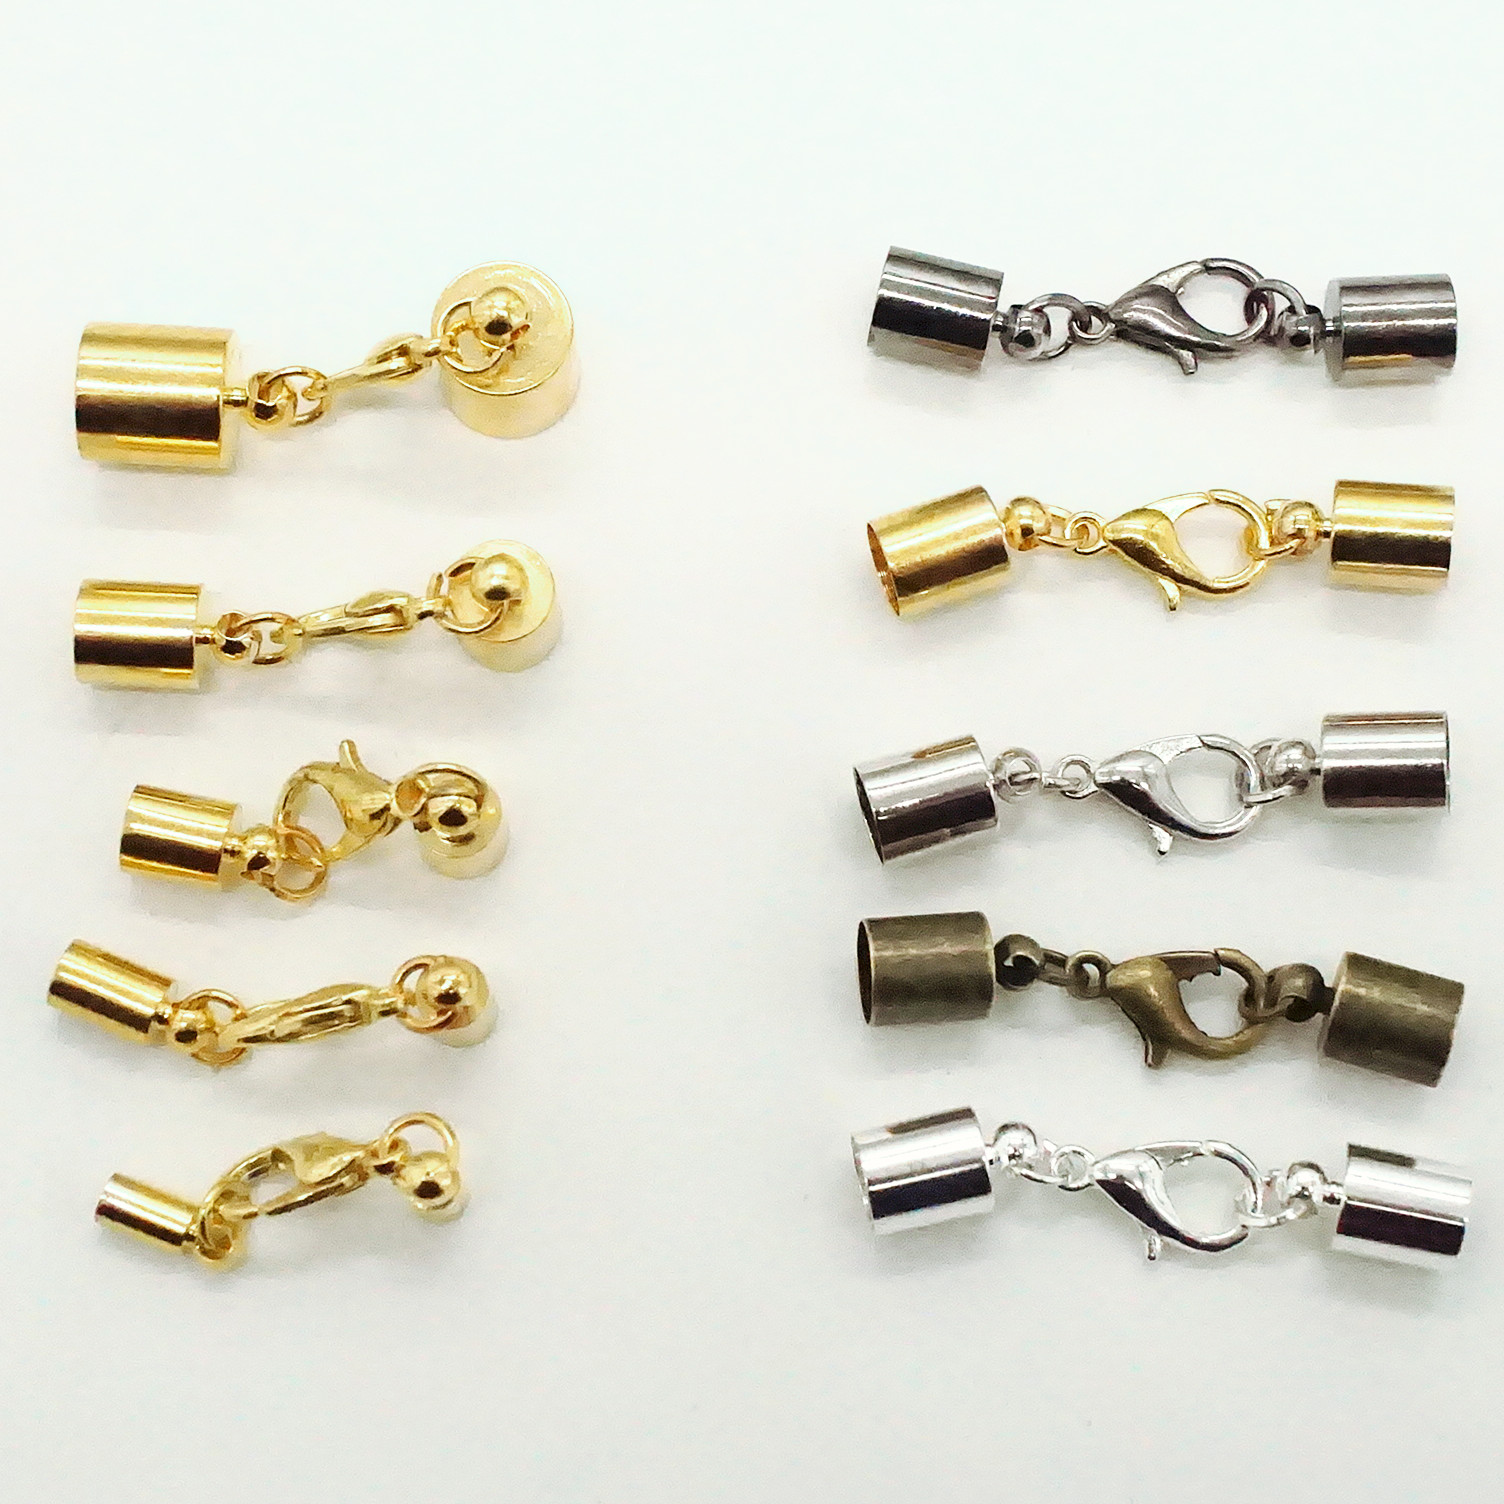 10pcs/Lot Leather Cord Bracelet Lobster Clasps Hooks 3 4 5 6 8 Mm Crimps End Tip Caps Connectors For Jewelry Making Findings